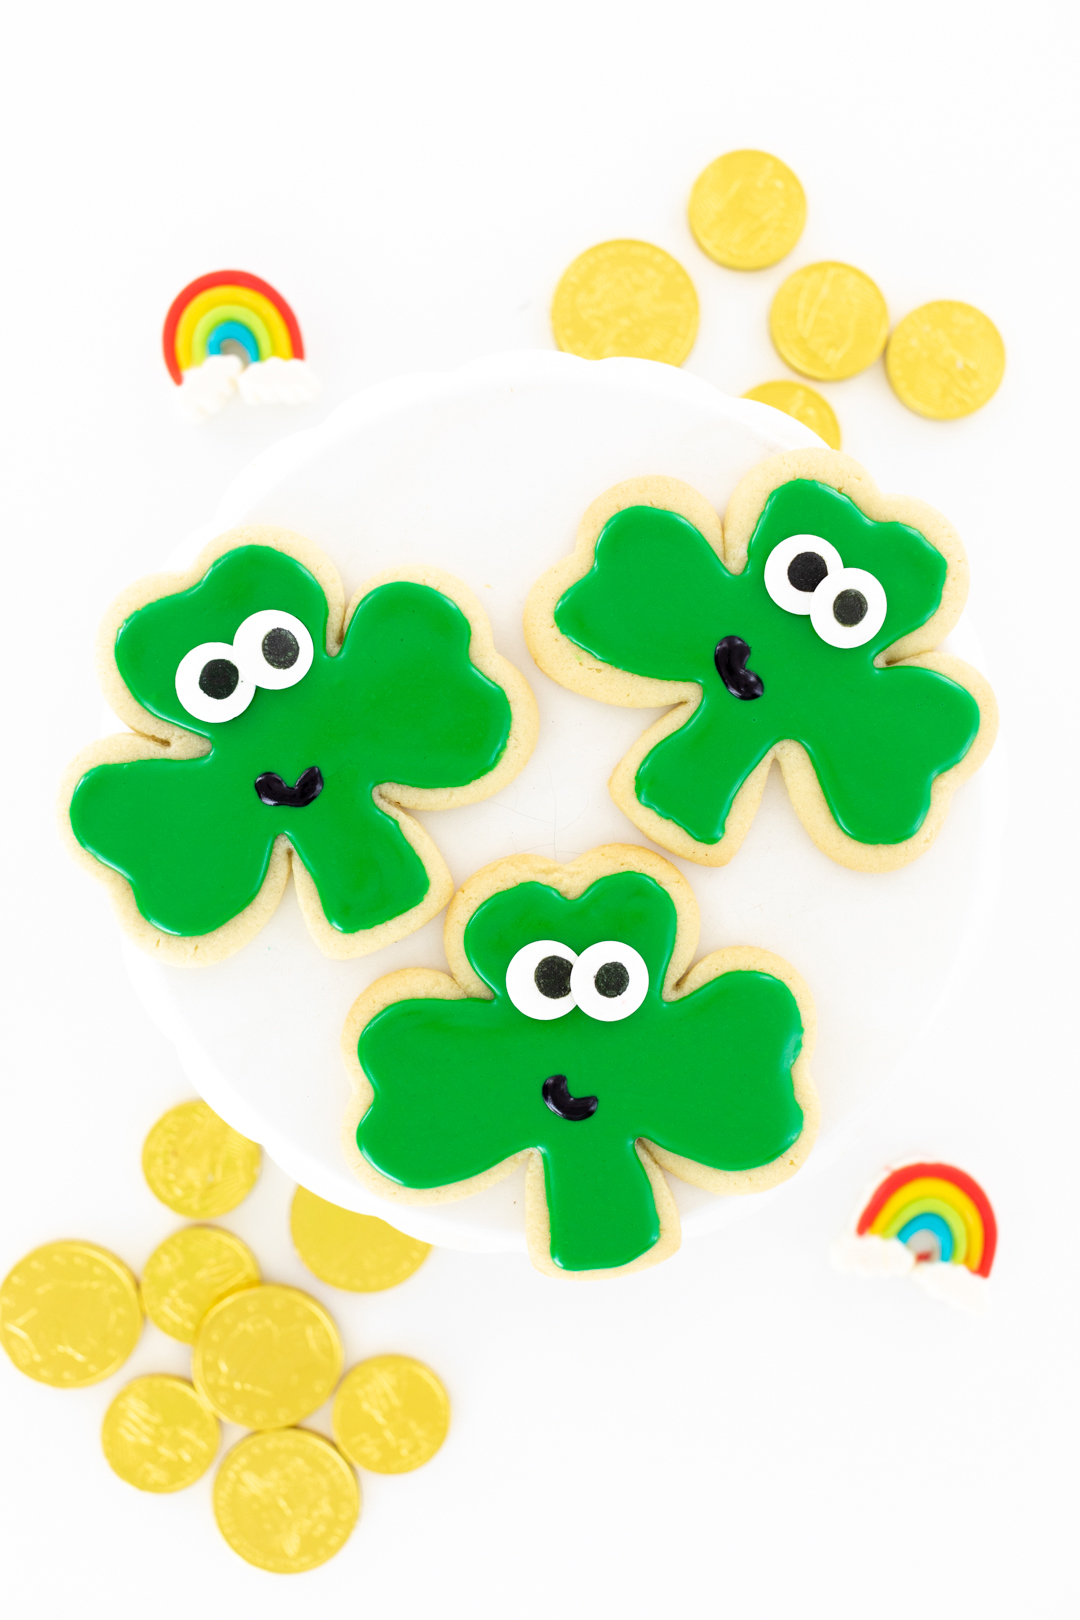 cutest shamrock cookies with big eyes